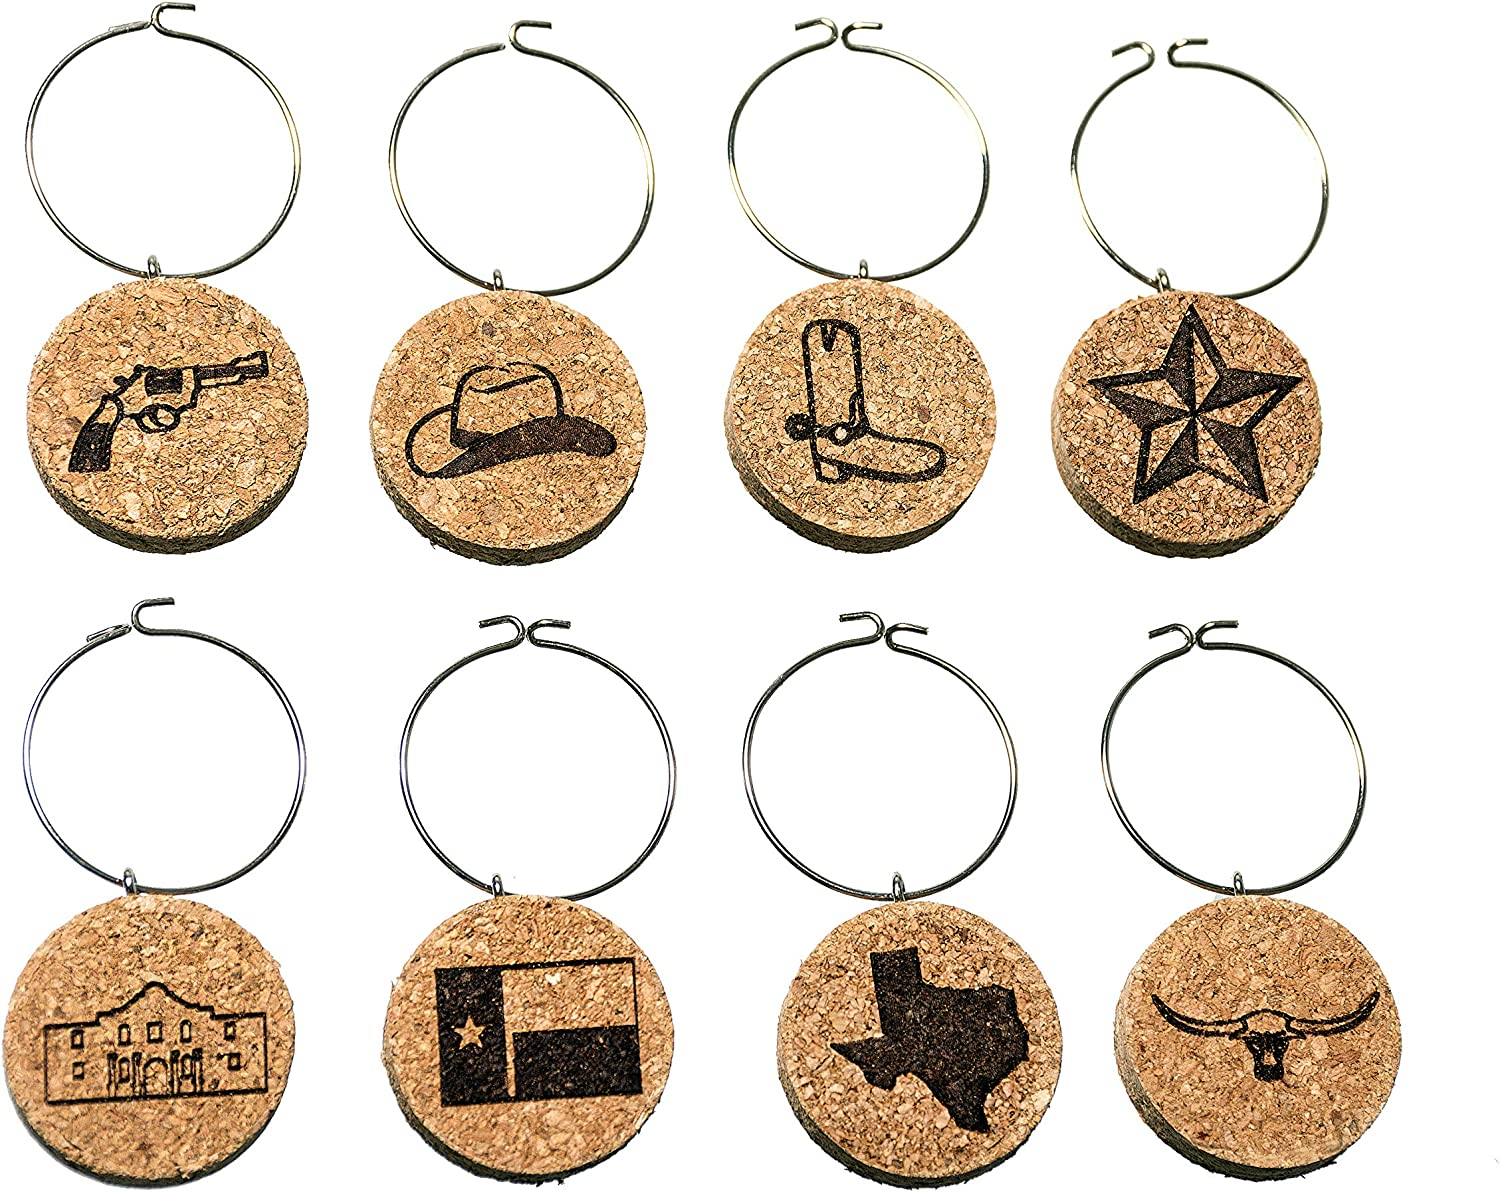 Texas Wine Charms (20+ Unique Sets) Cork Wine Glass Charms - Set of 8 Texas Charms, Texas Themed Gifts/Souvenirs - Wine Glass Accessories, Texas Wine Gift Basket for Wine Lover - Drink Identifiers